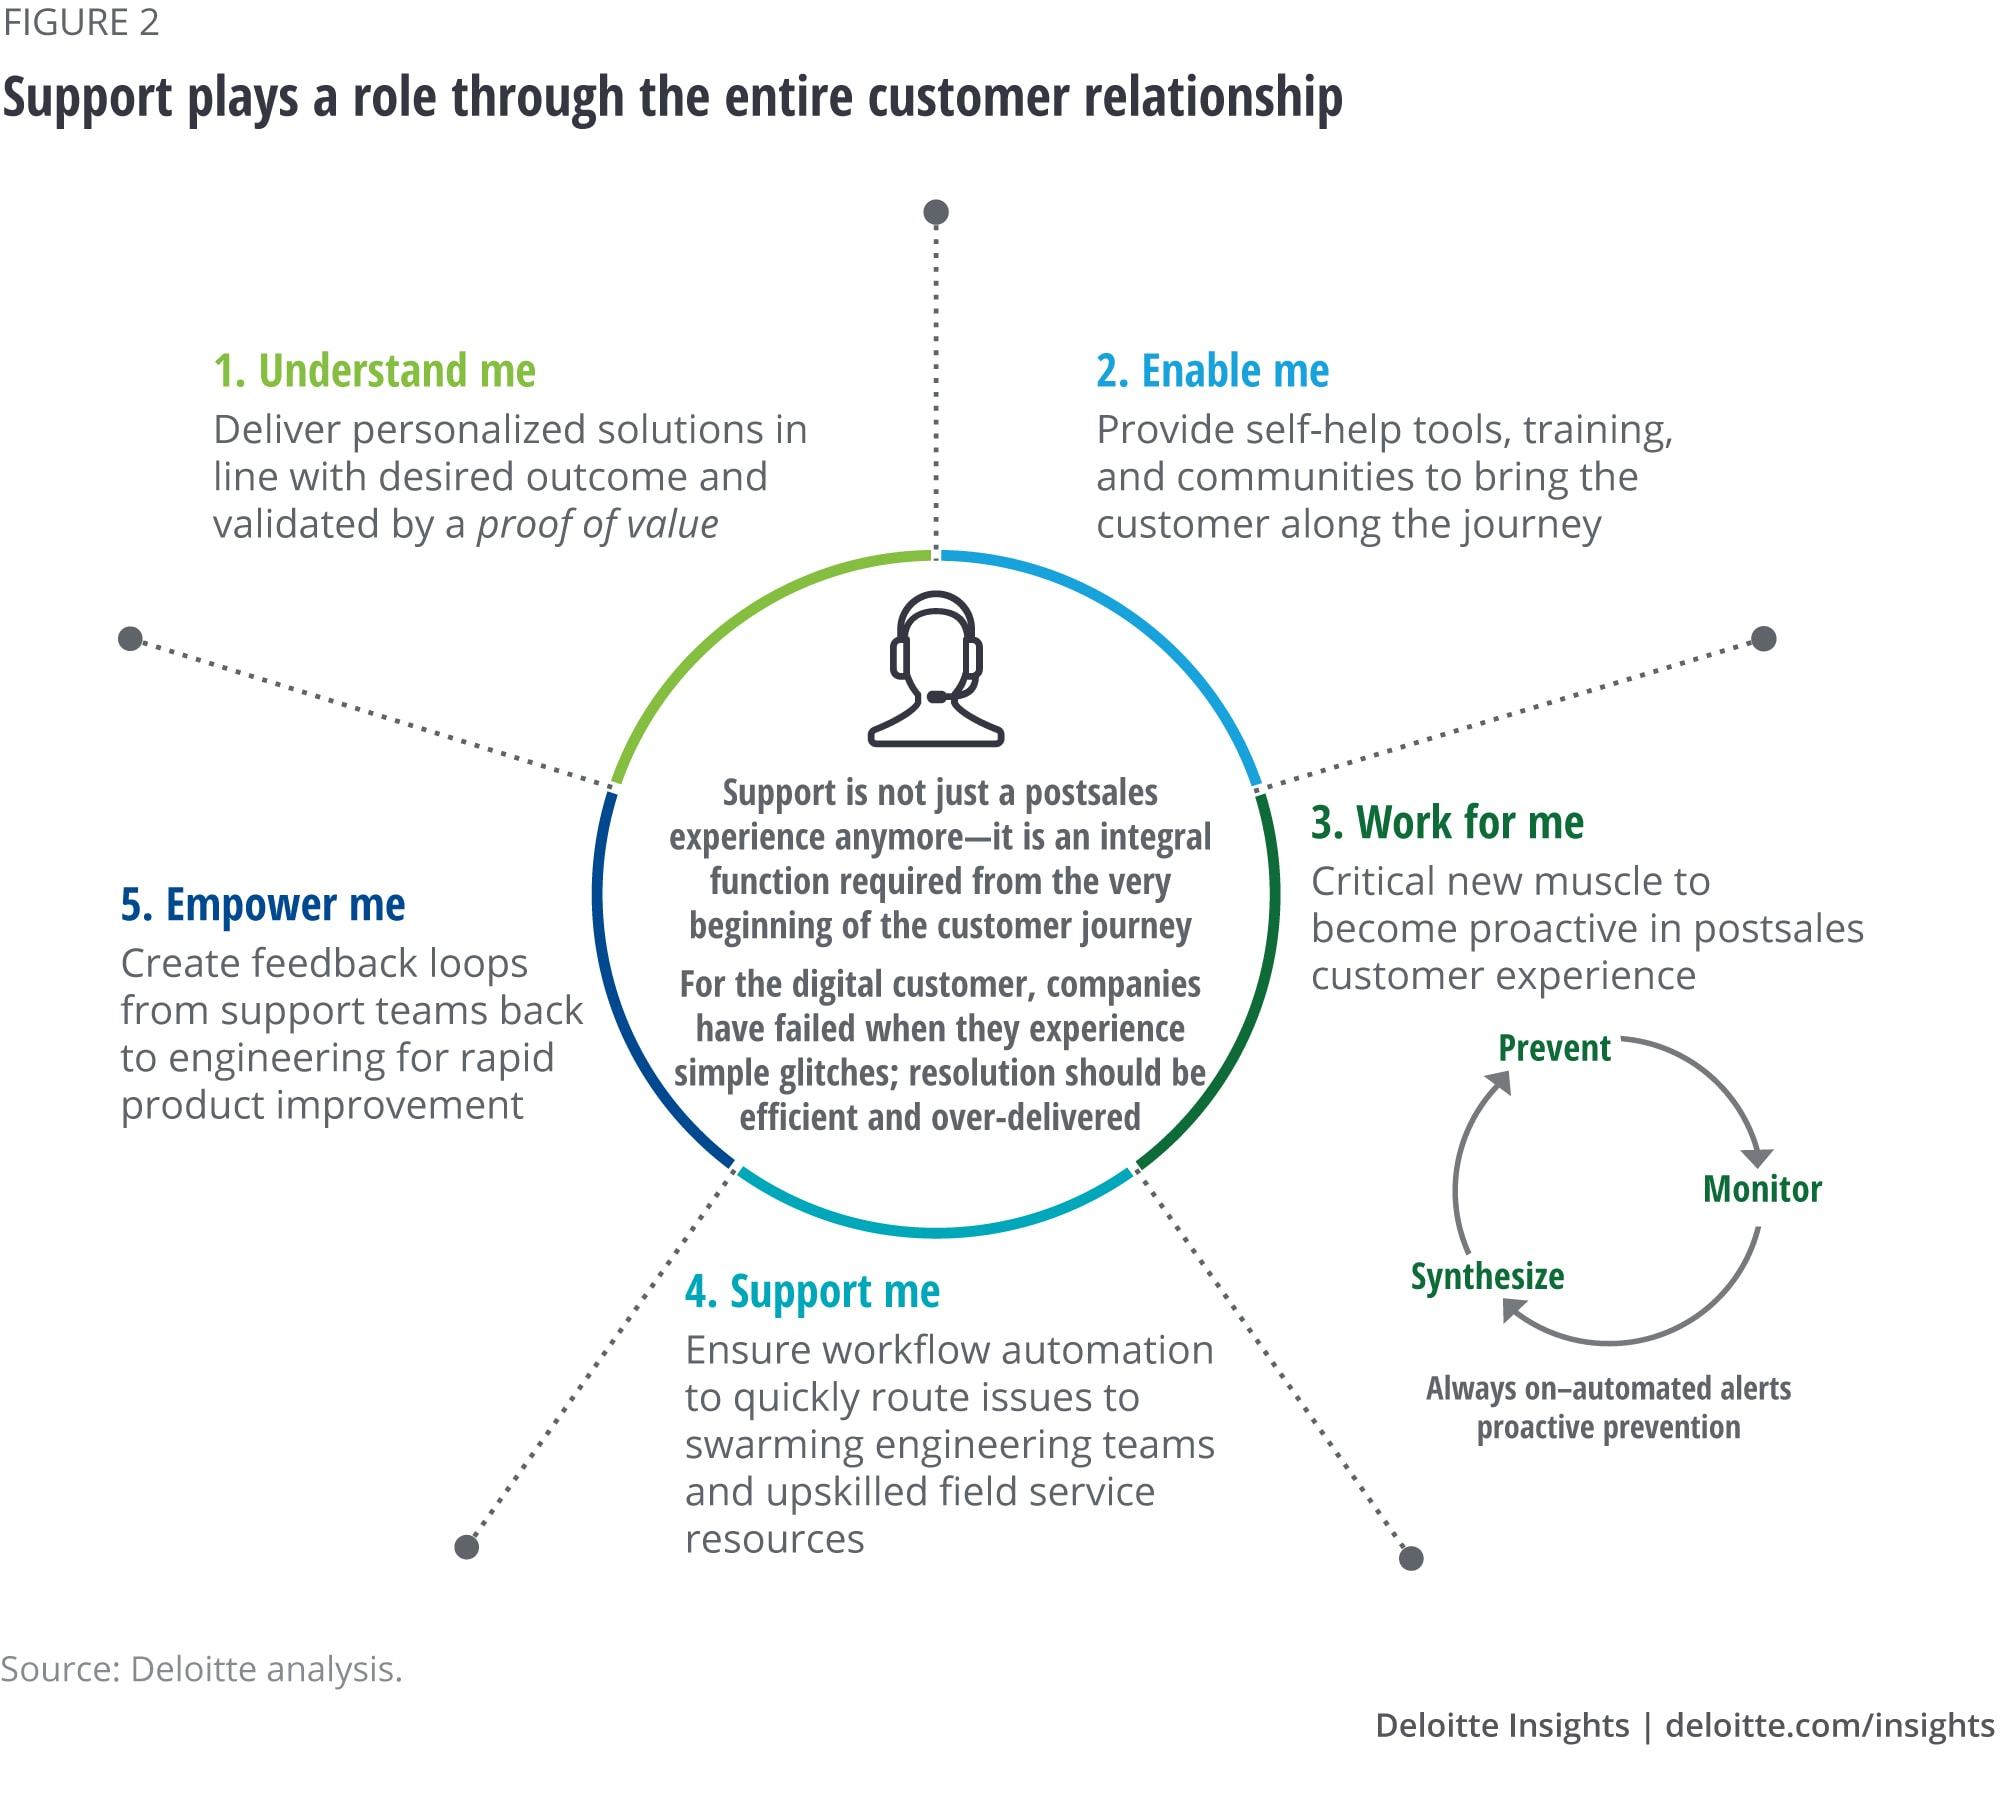 Figure 2. Support plays a role through the entire customer relationship